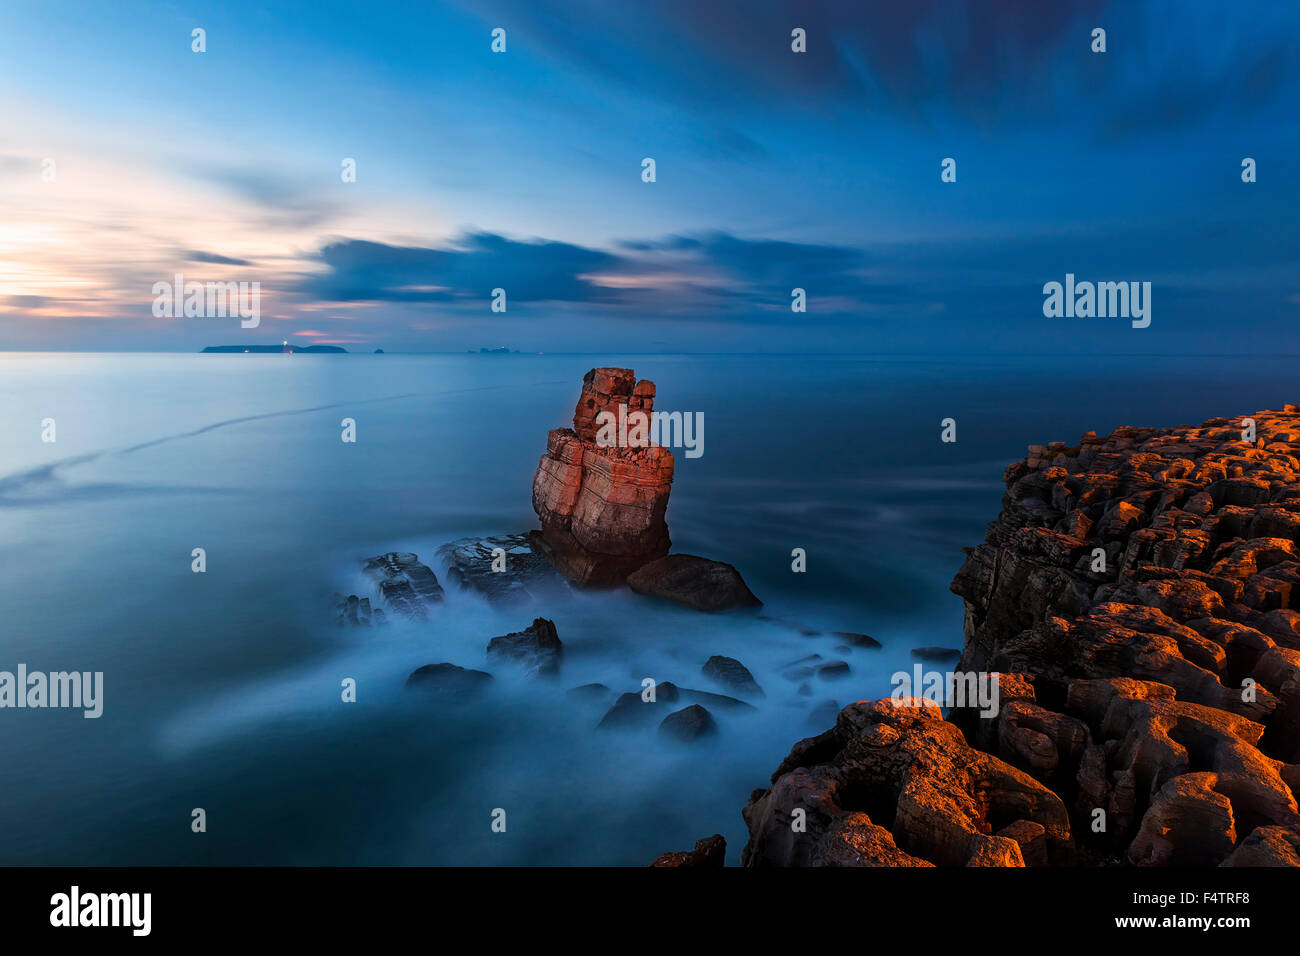 Nau dos Corvos in the Carvoeiro Cape, Peniche, Portugal during the blue hour - Stock Image